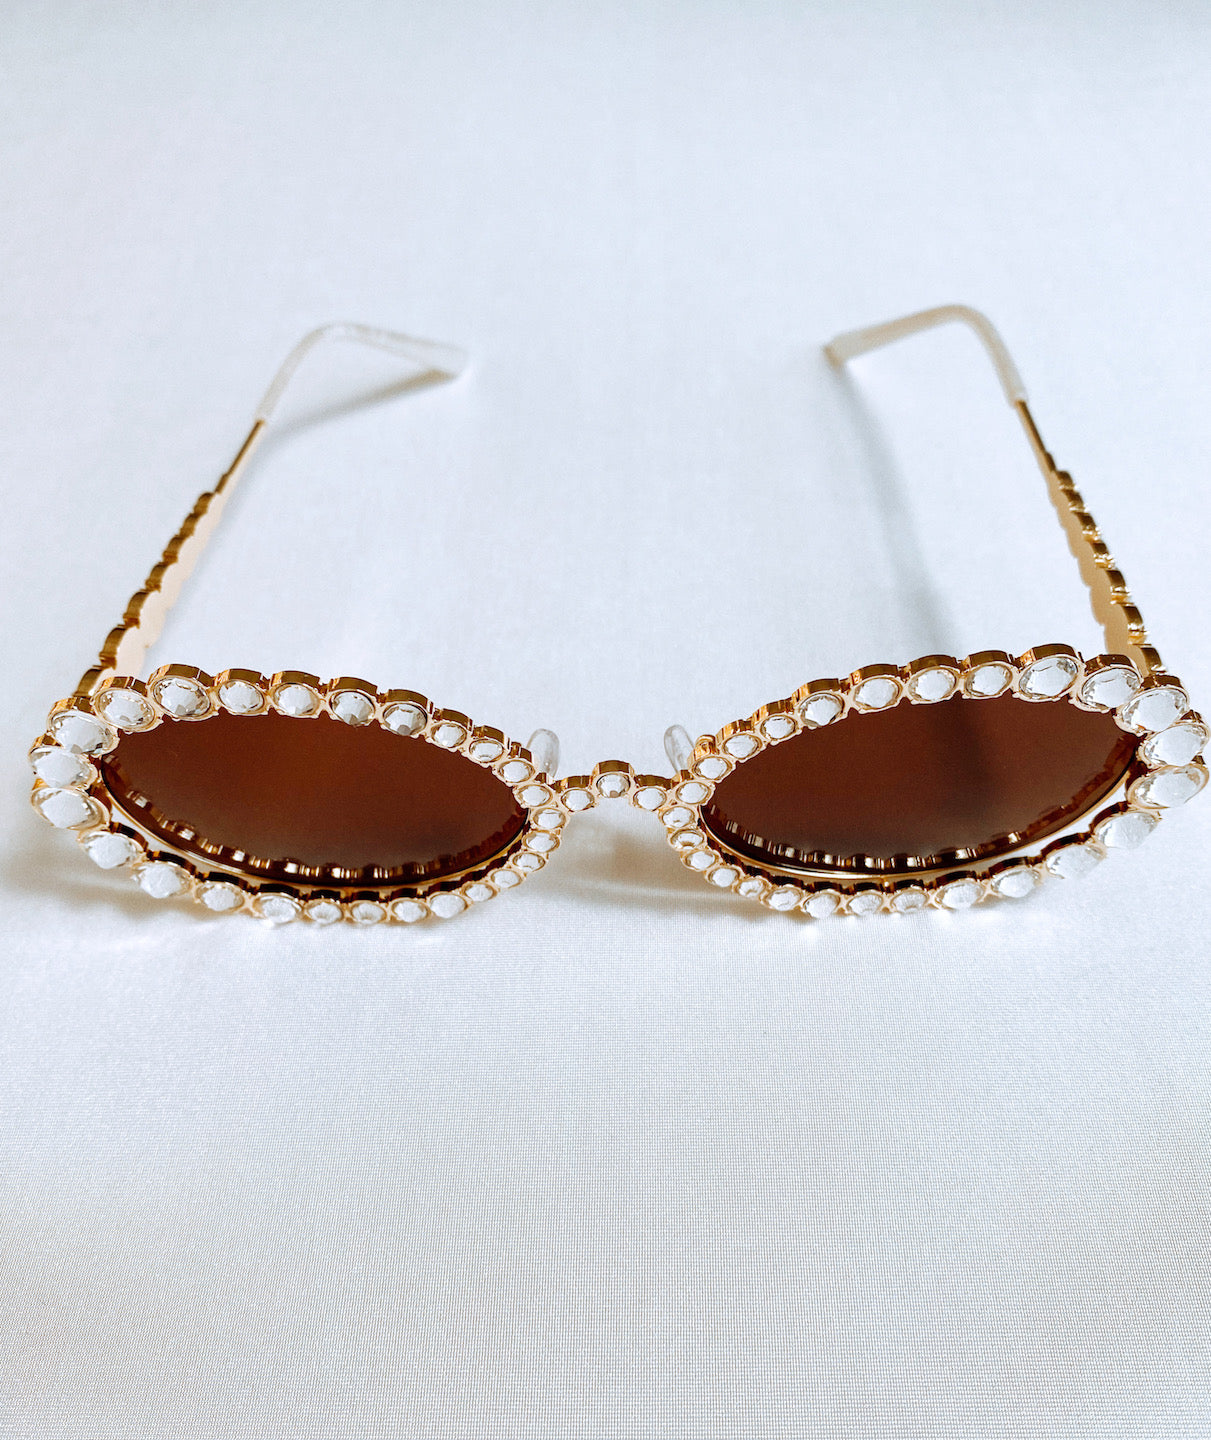 CHA CHA SUNGLASSES - Lurelly